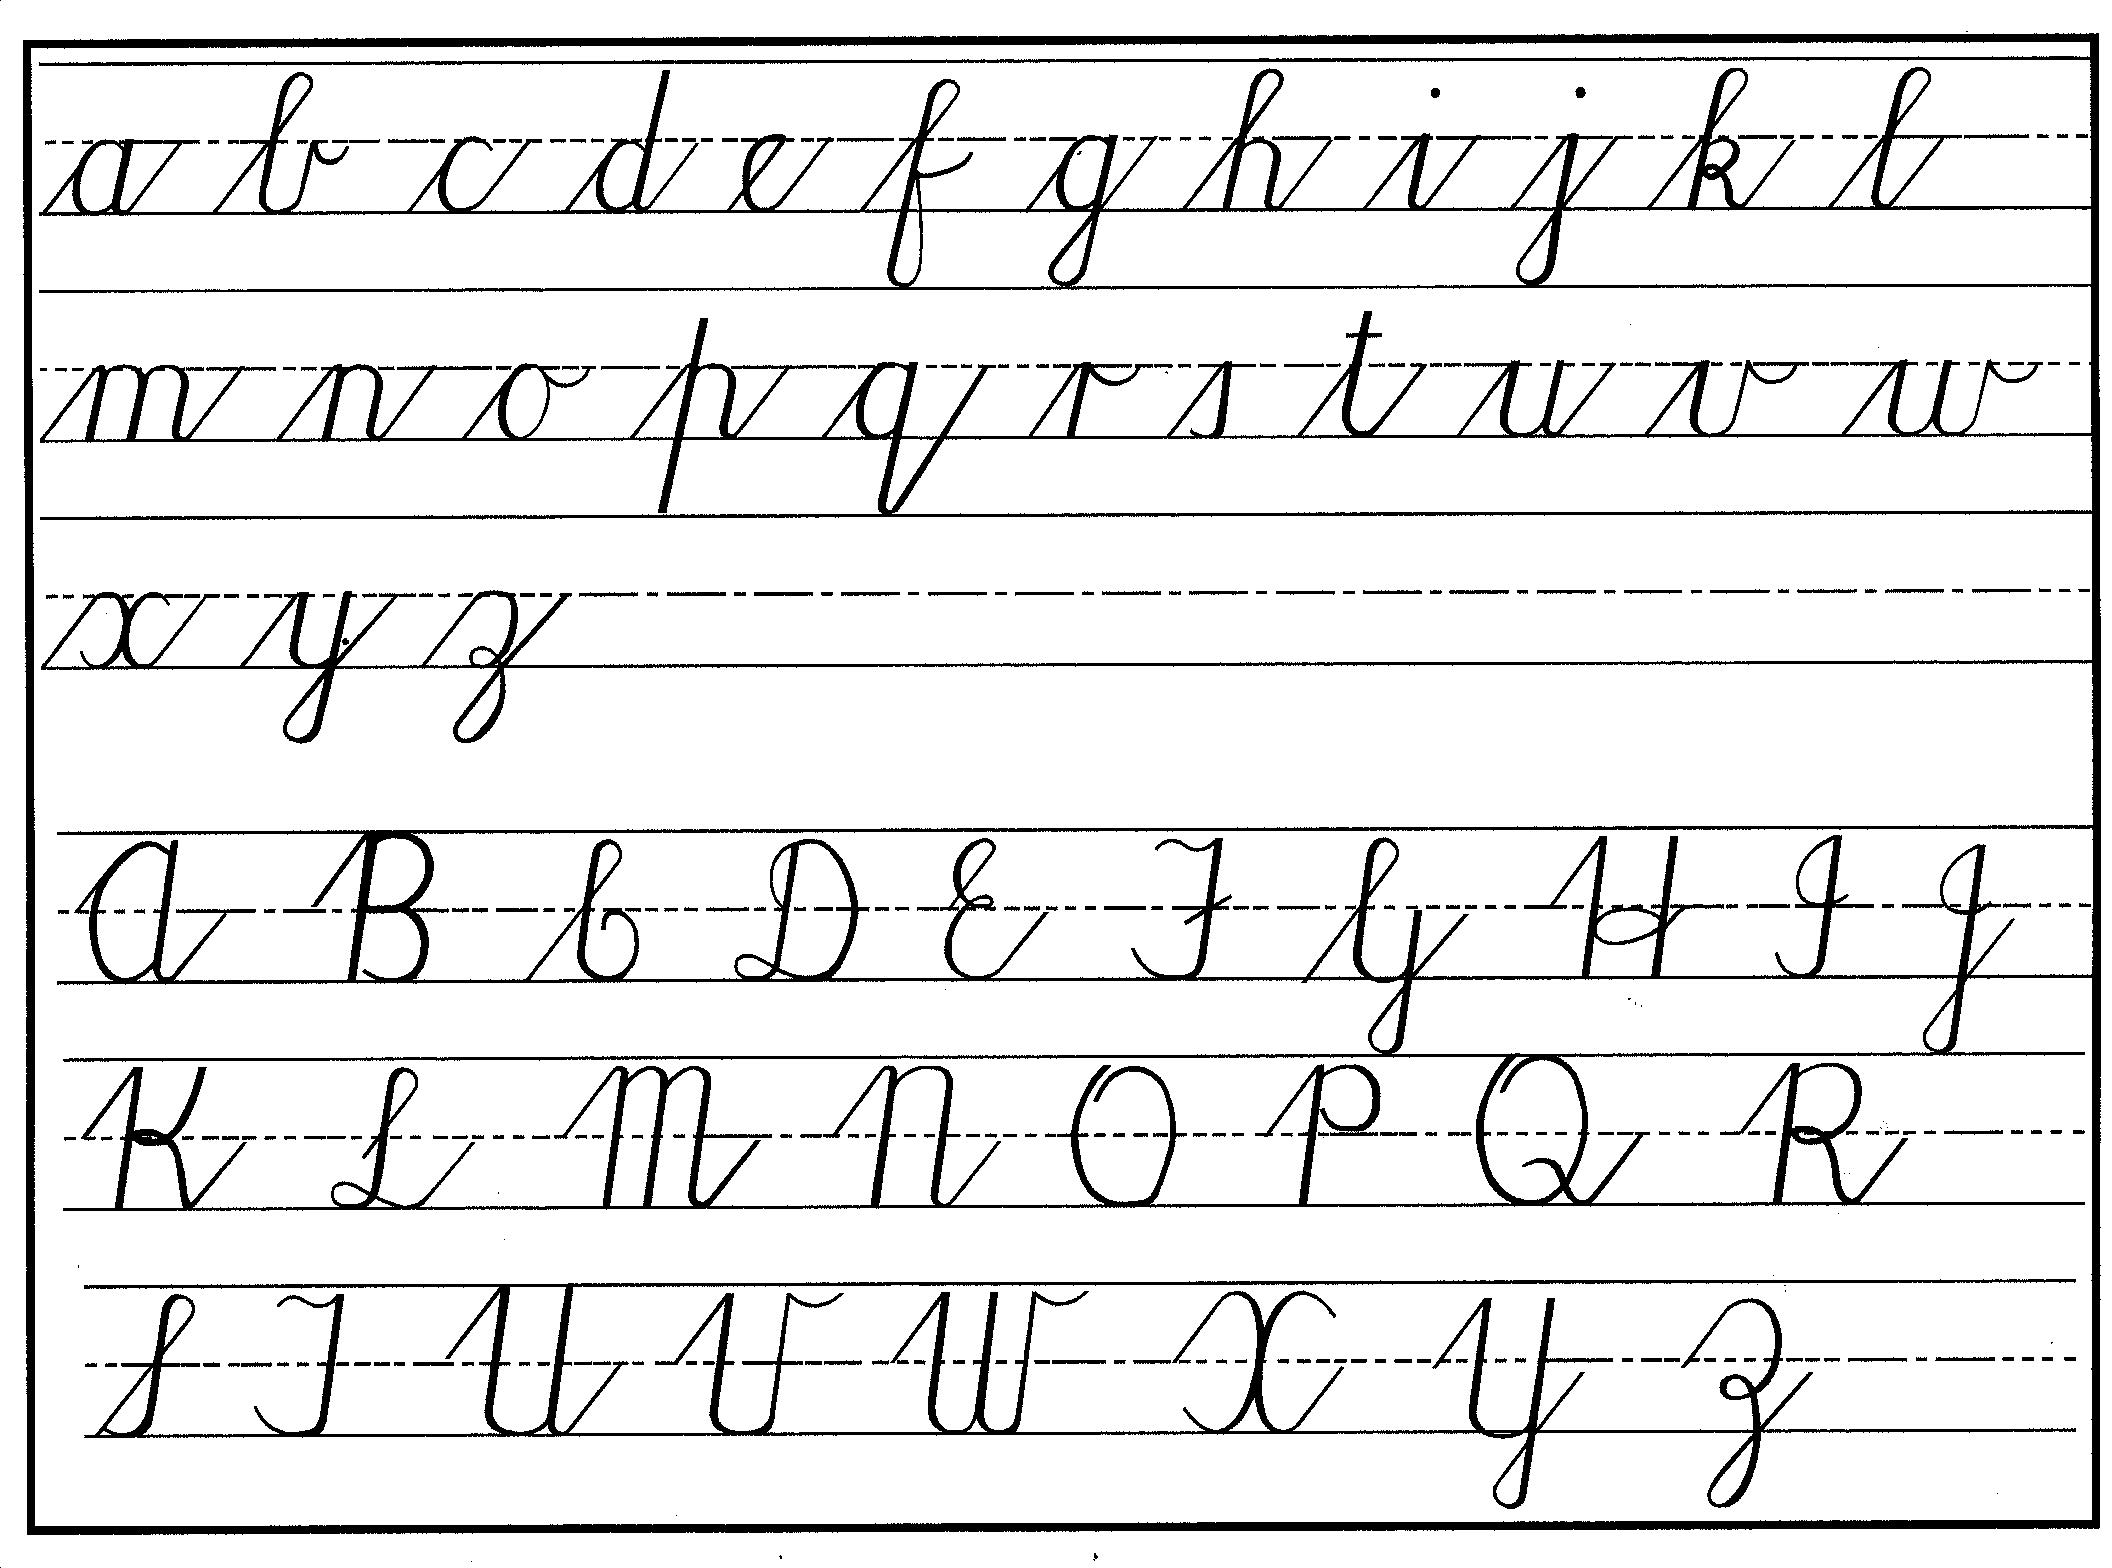 Worksheet Letter In Cursive cursive handwriting step by for beginners practical pages we use laminated charts instead of books or programs